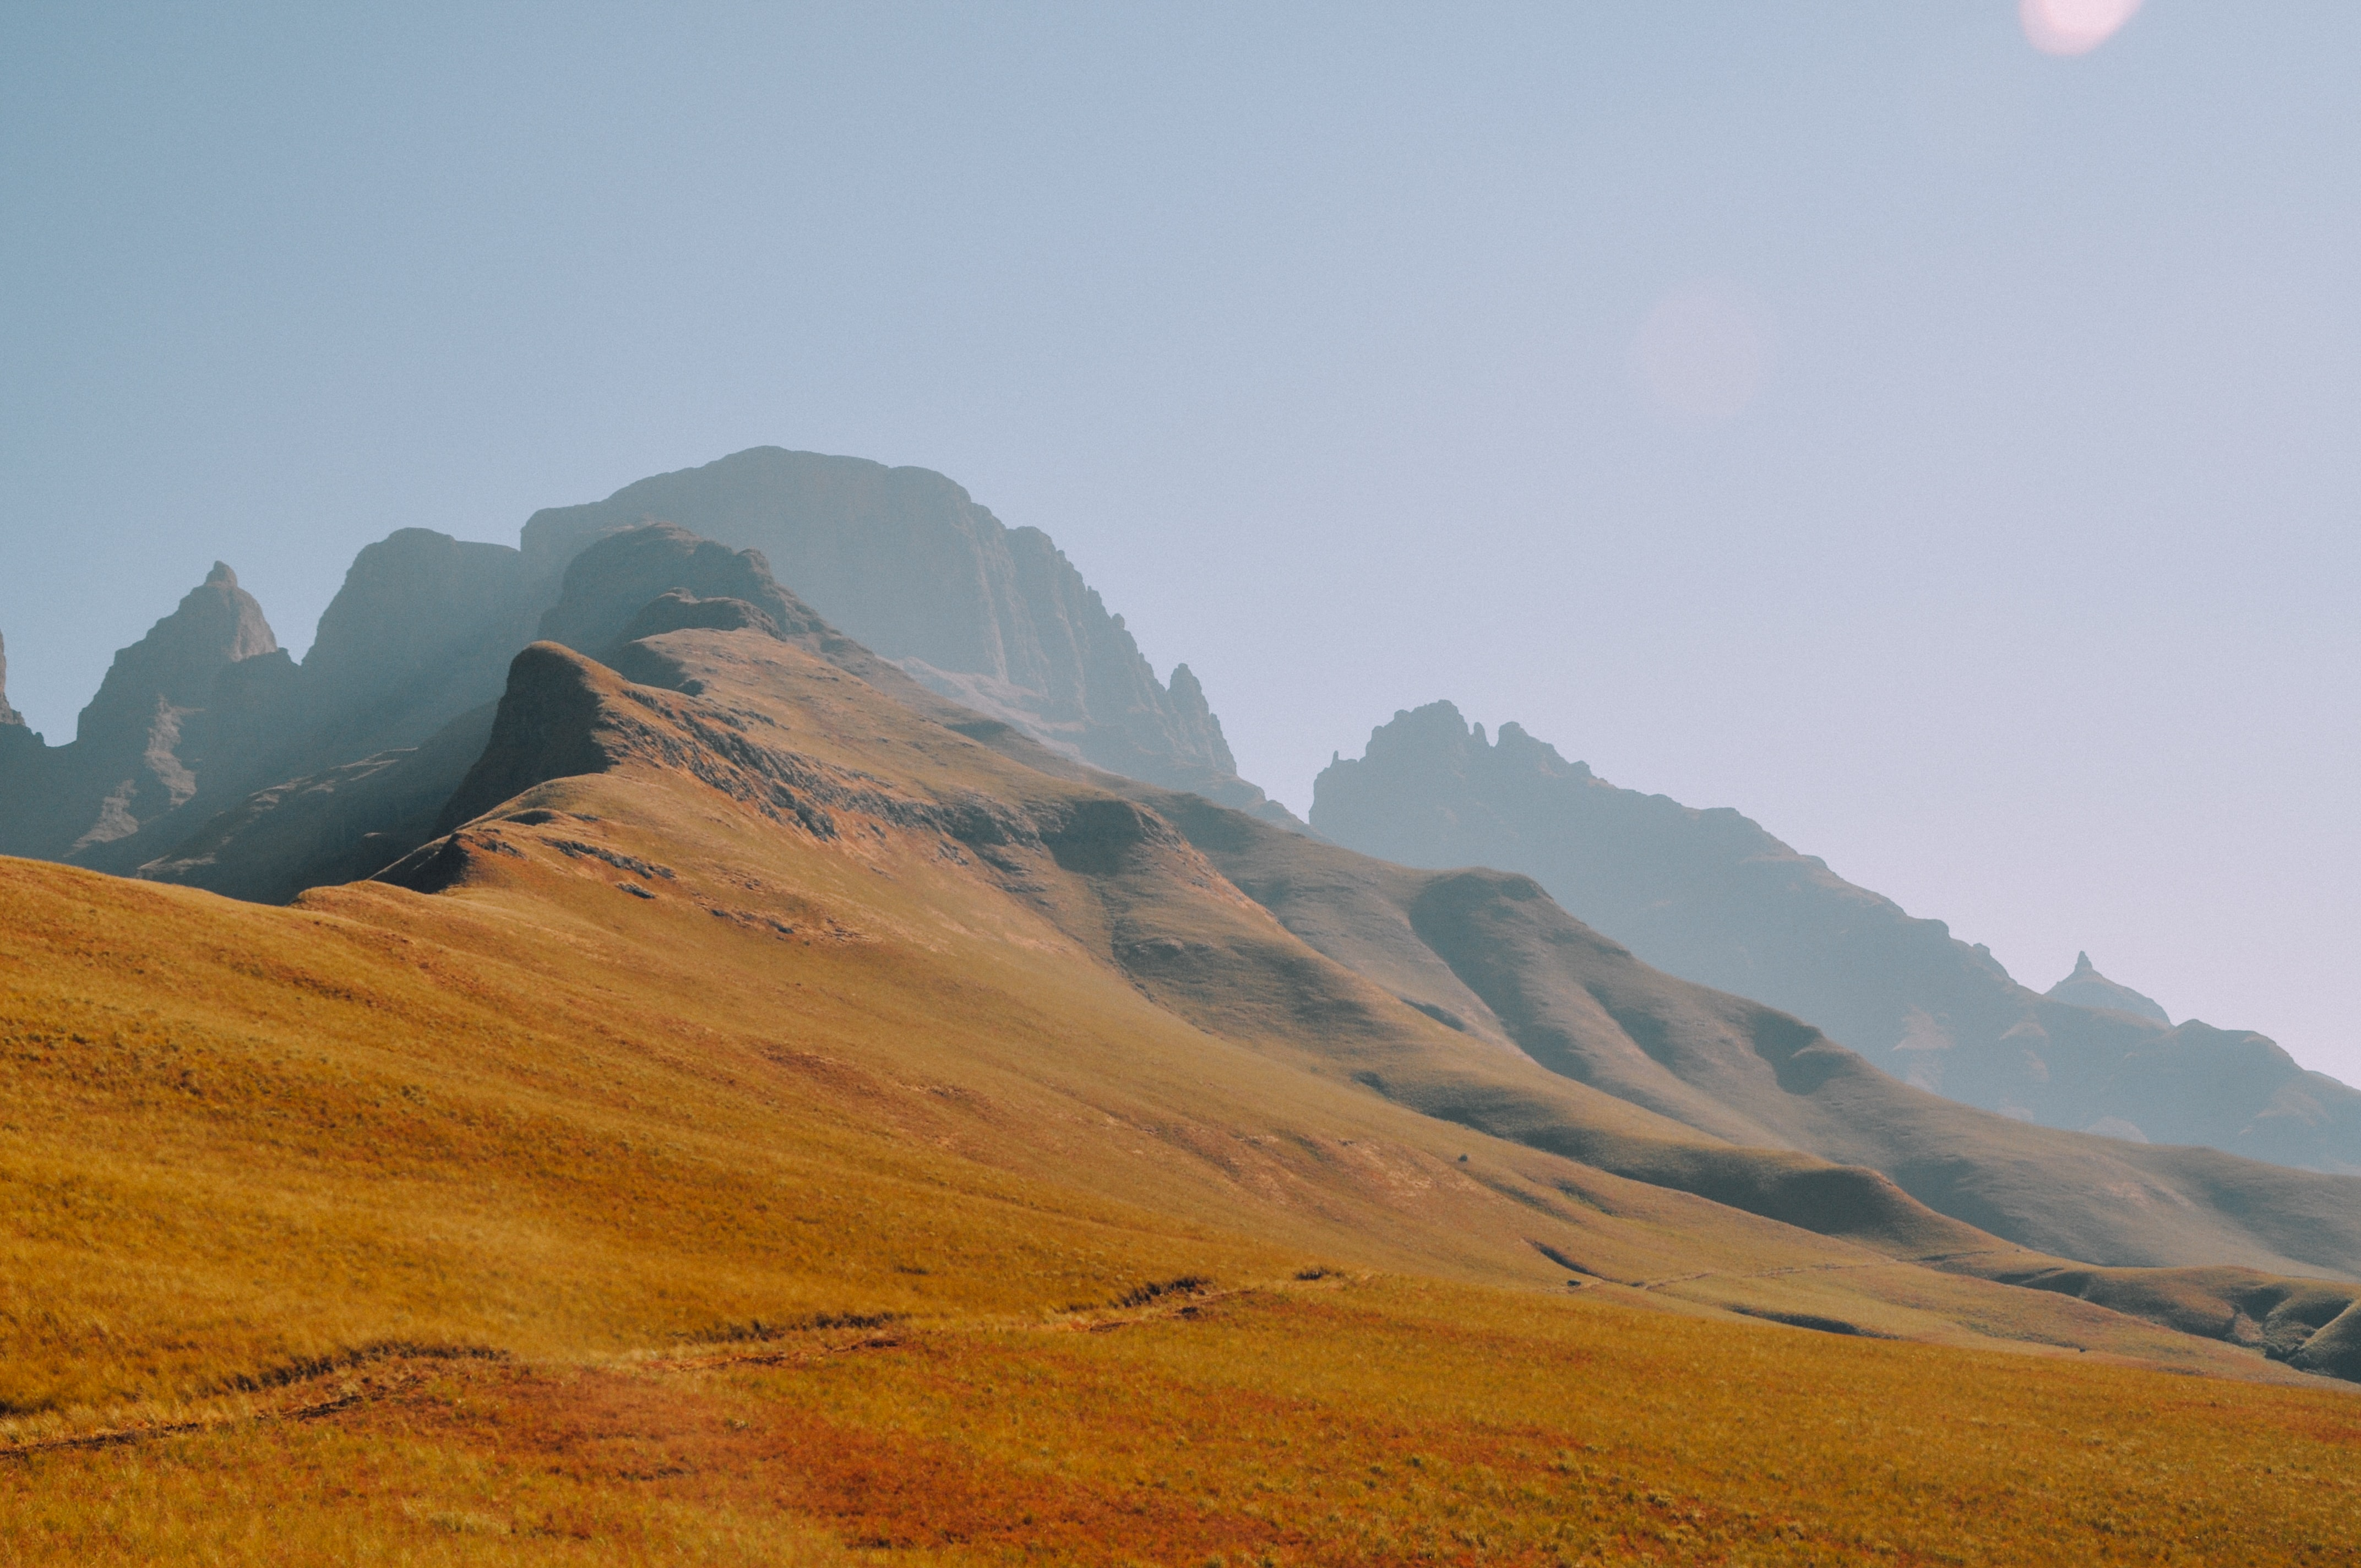 Ascent to a mountainous hill with orange, ocher ground on a cloudless day